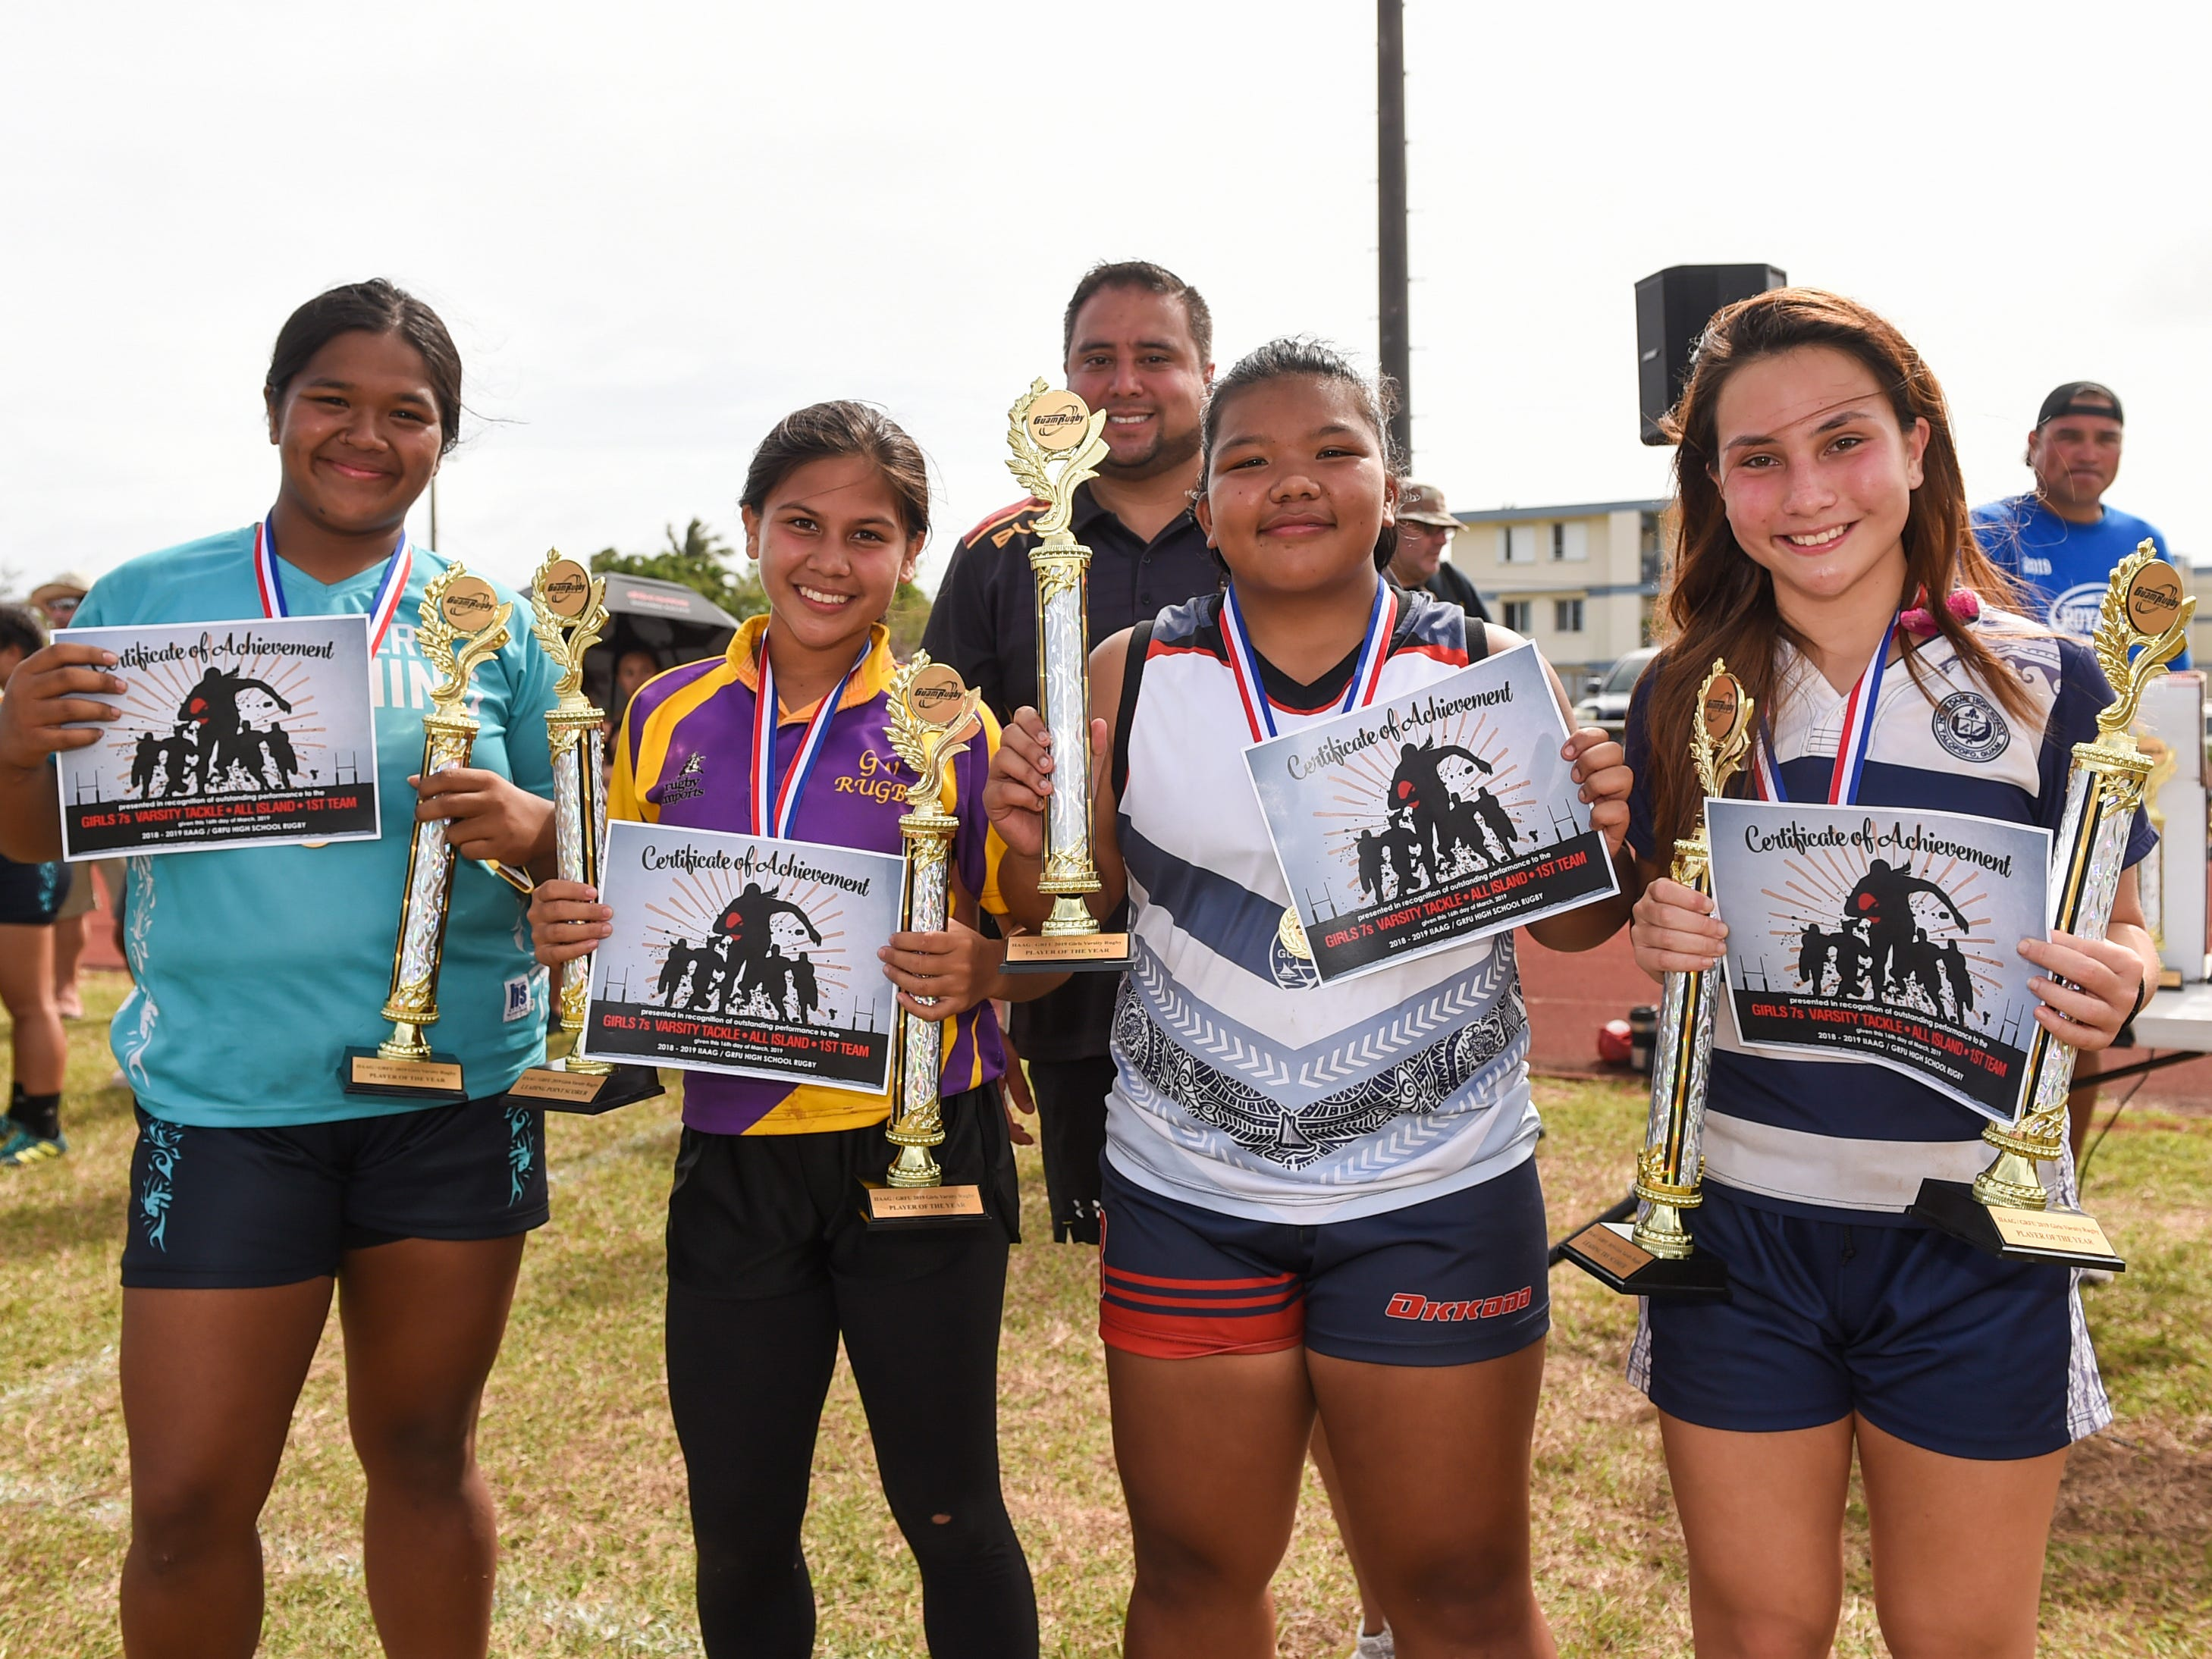 Co-Player of Year Award recipients for the 2018-2019 IIAAG/GRFU Girls Rugby season at the George Washington High School Field, March 16, 2019. From left: Bre'Ani San Nicolas, Southern High School, Aveah Garrido, George Washington High School, Amber Apatang, Okkodo High School, and Faith Moylan, Notre Dame High School.